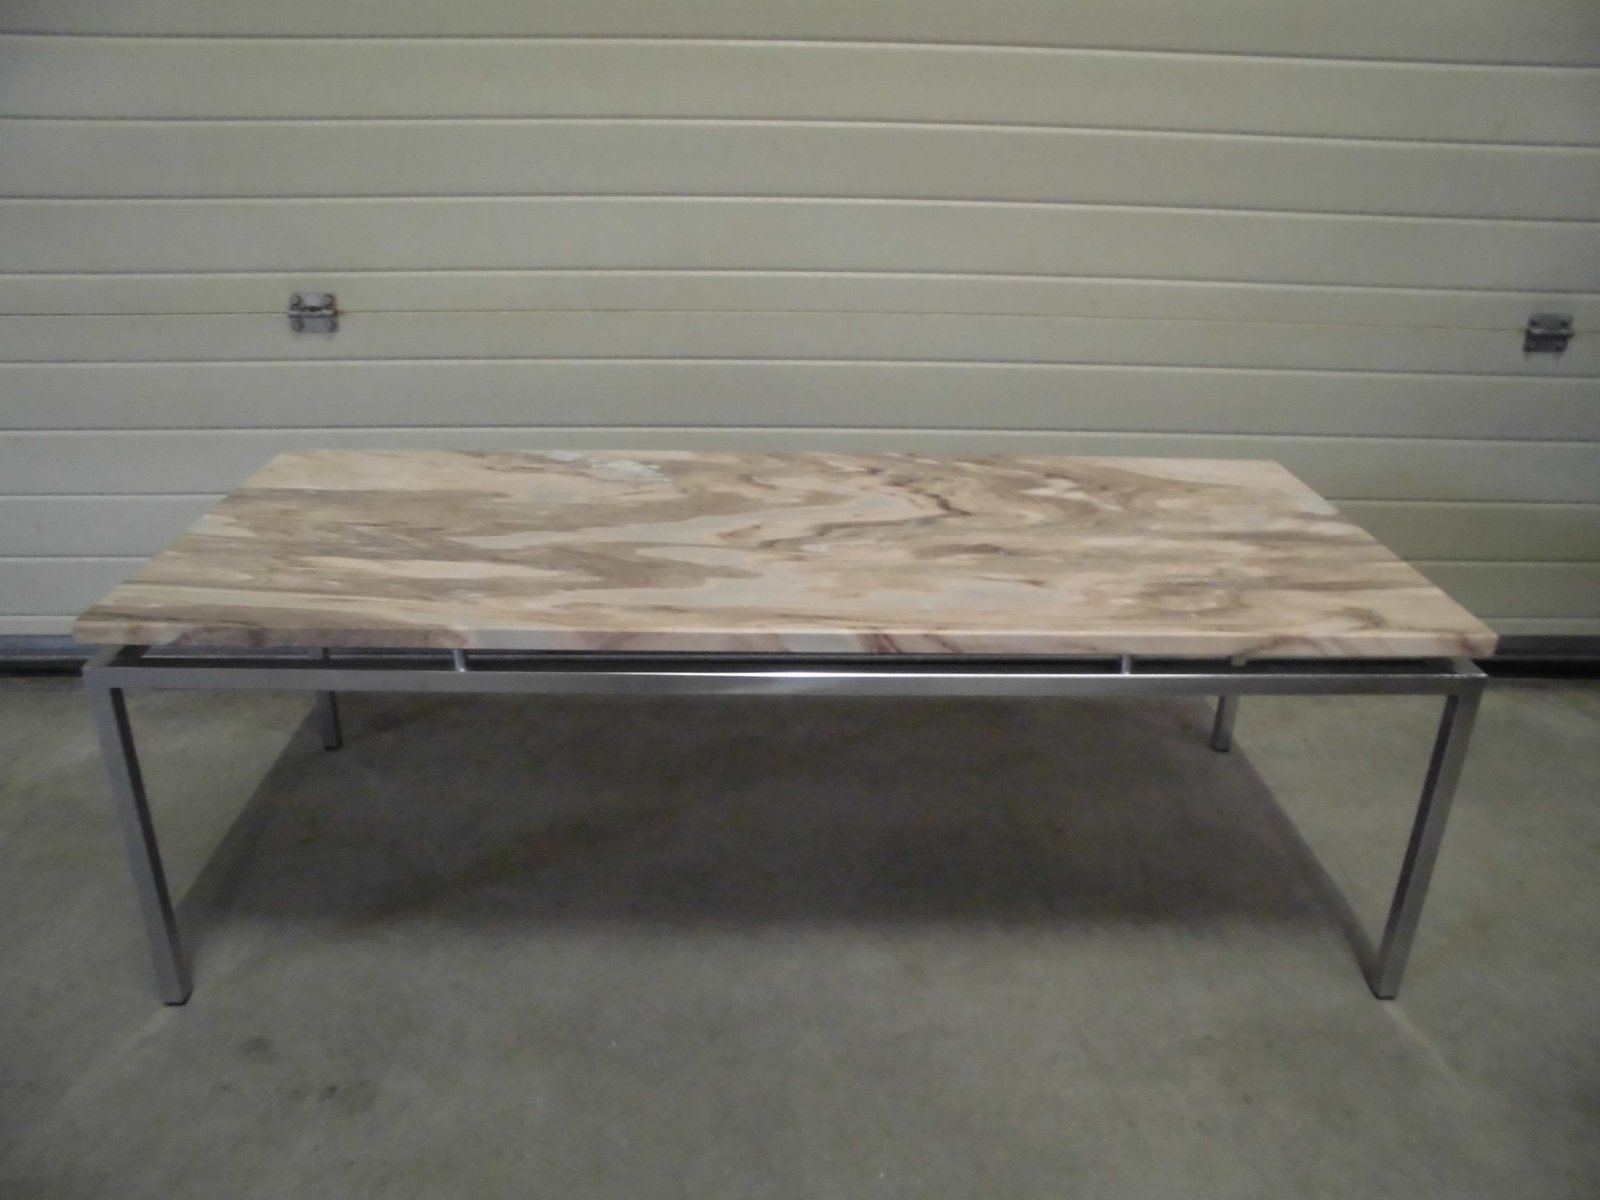 Dutch Vintage Marble Coffee Table 1969 for sale at Pamono